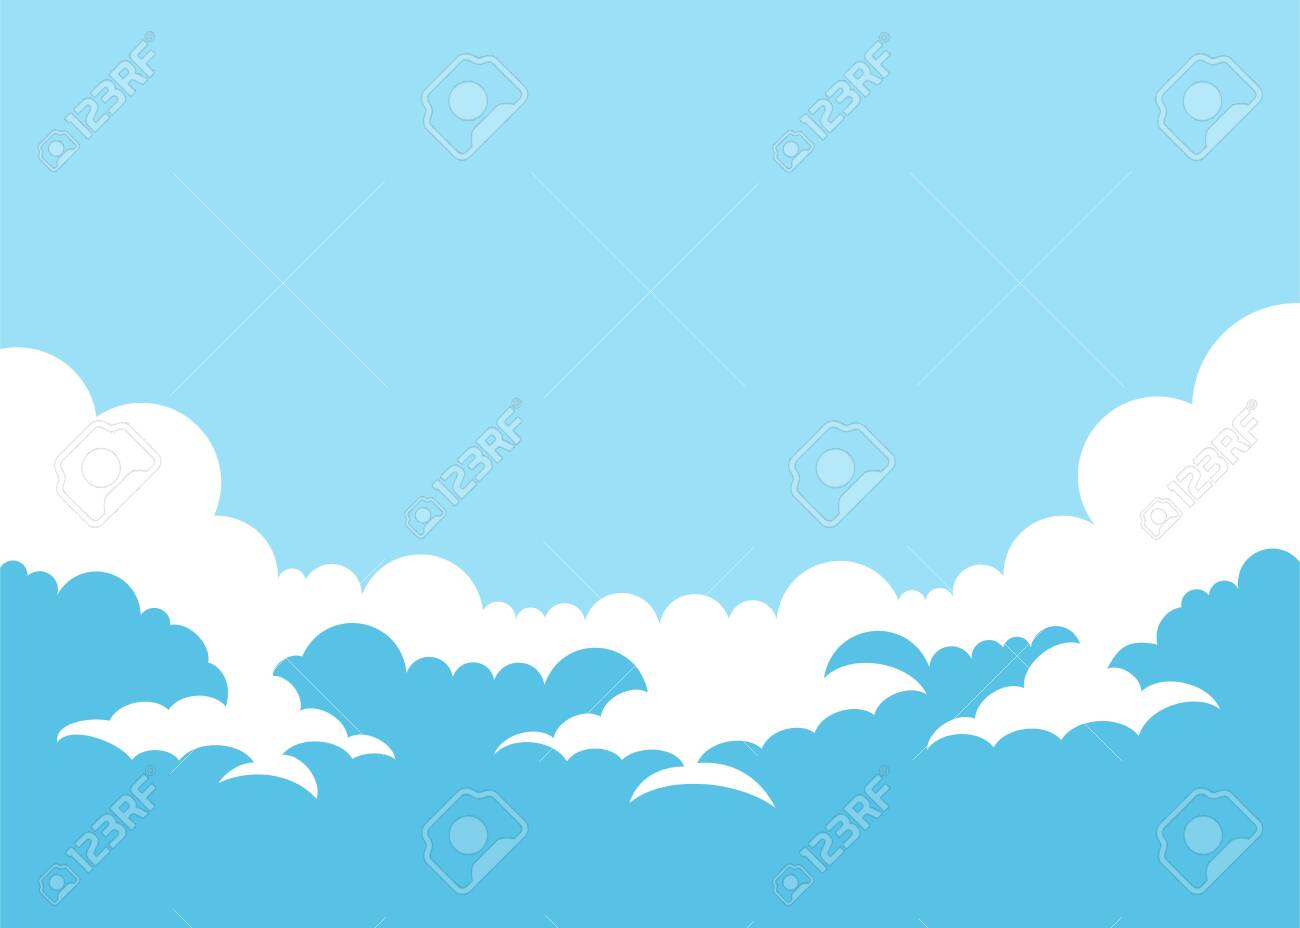 Vector illustration simple sky background with clouds - 123234176